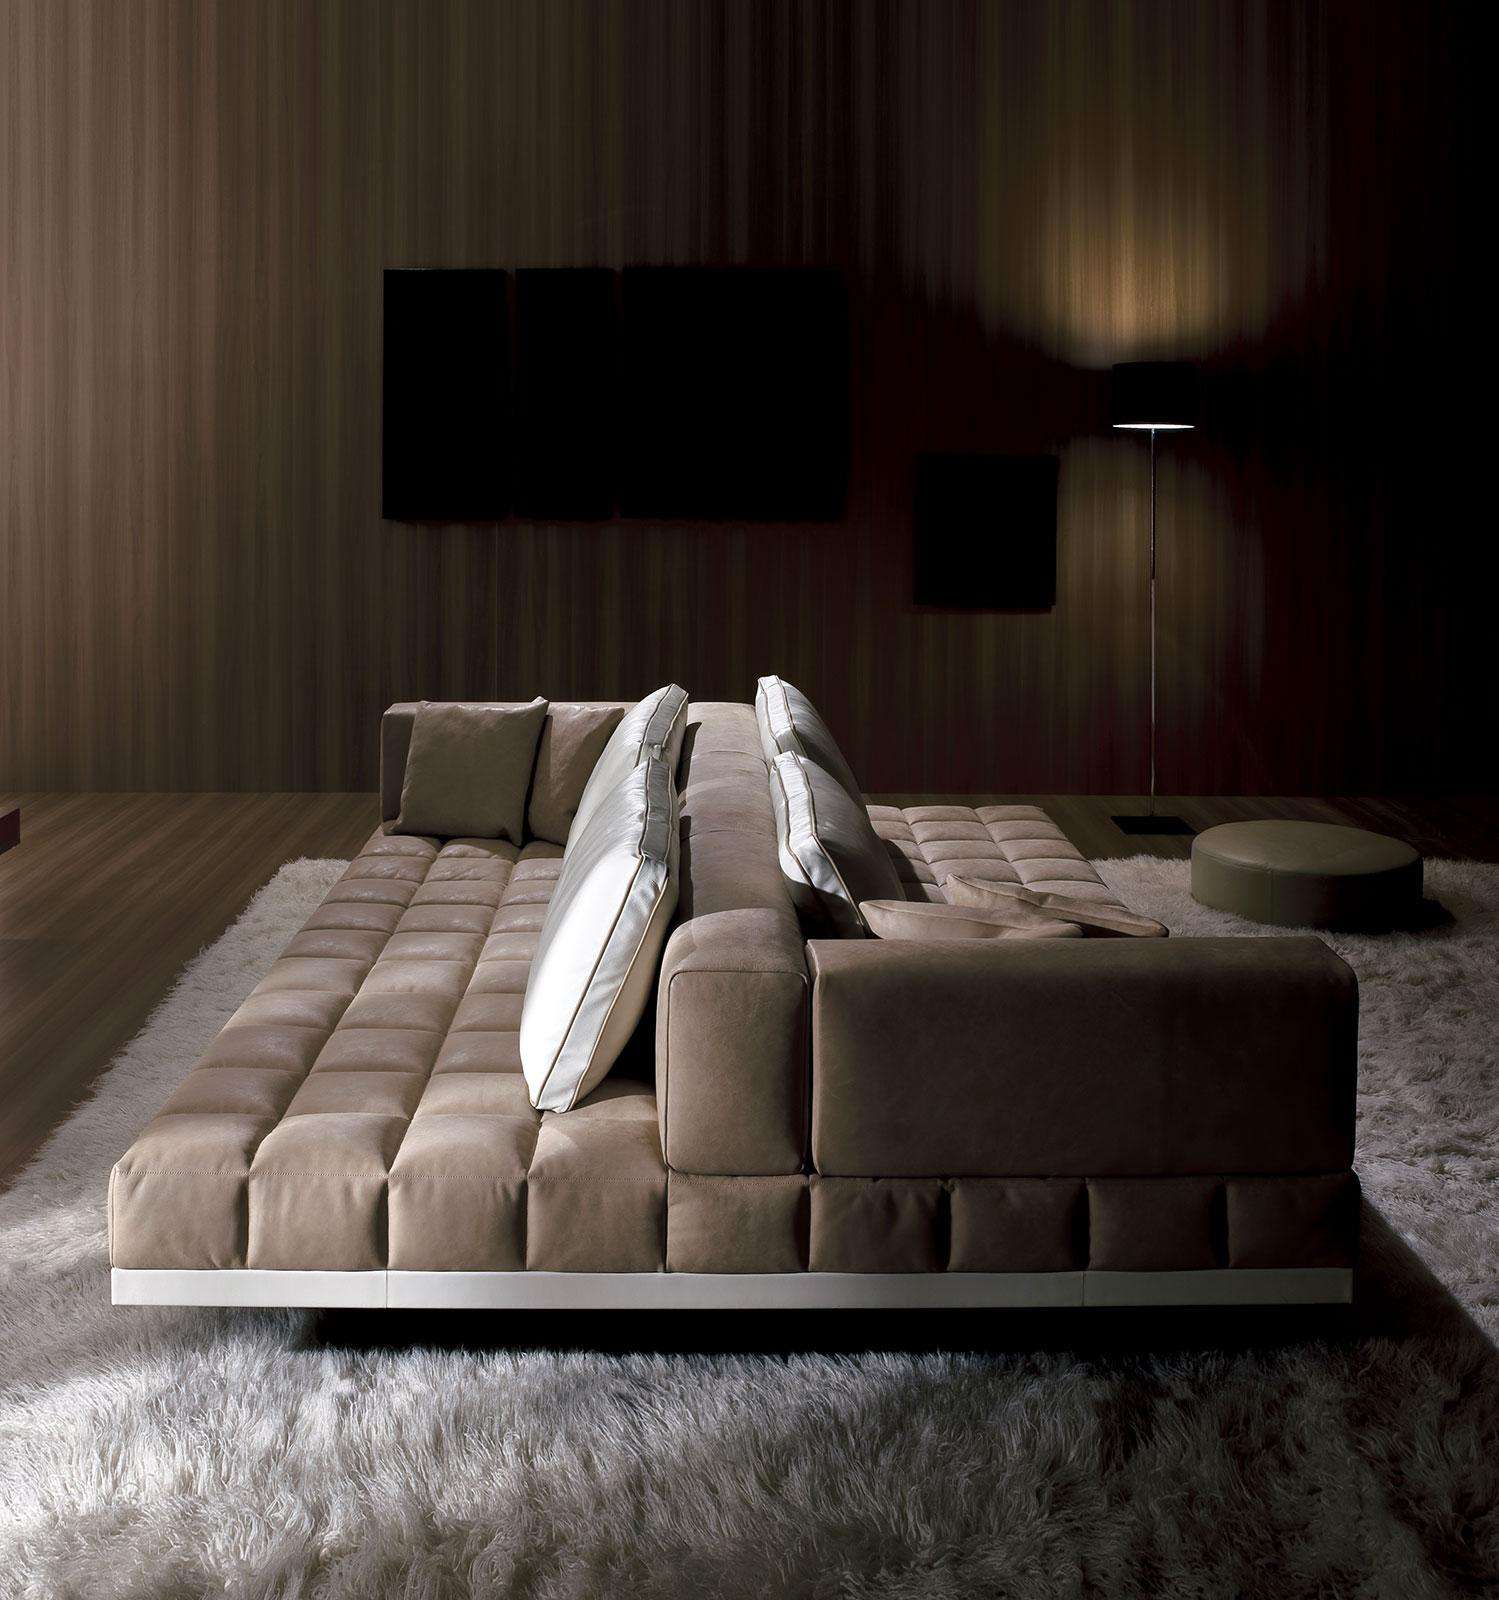 Sofa Shops: Shop Online - Italy Dream Design